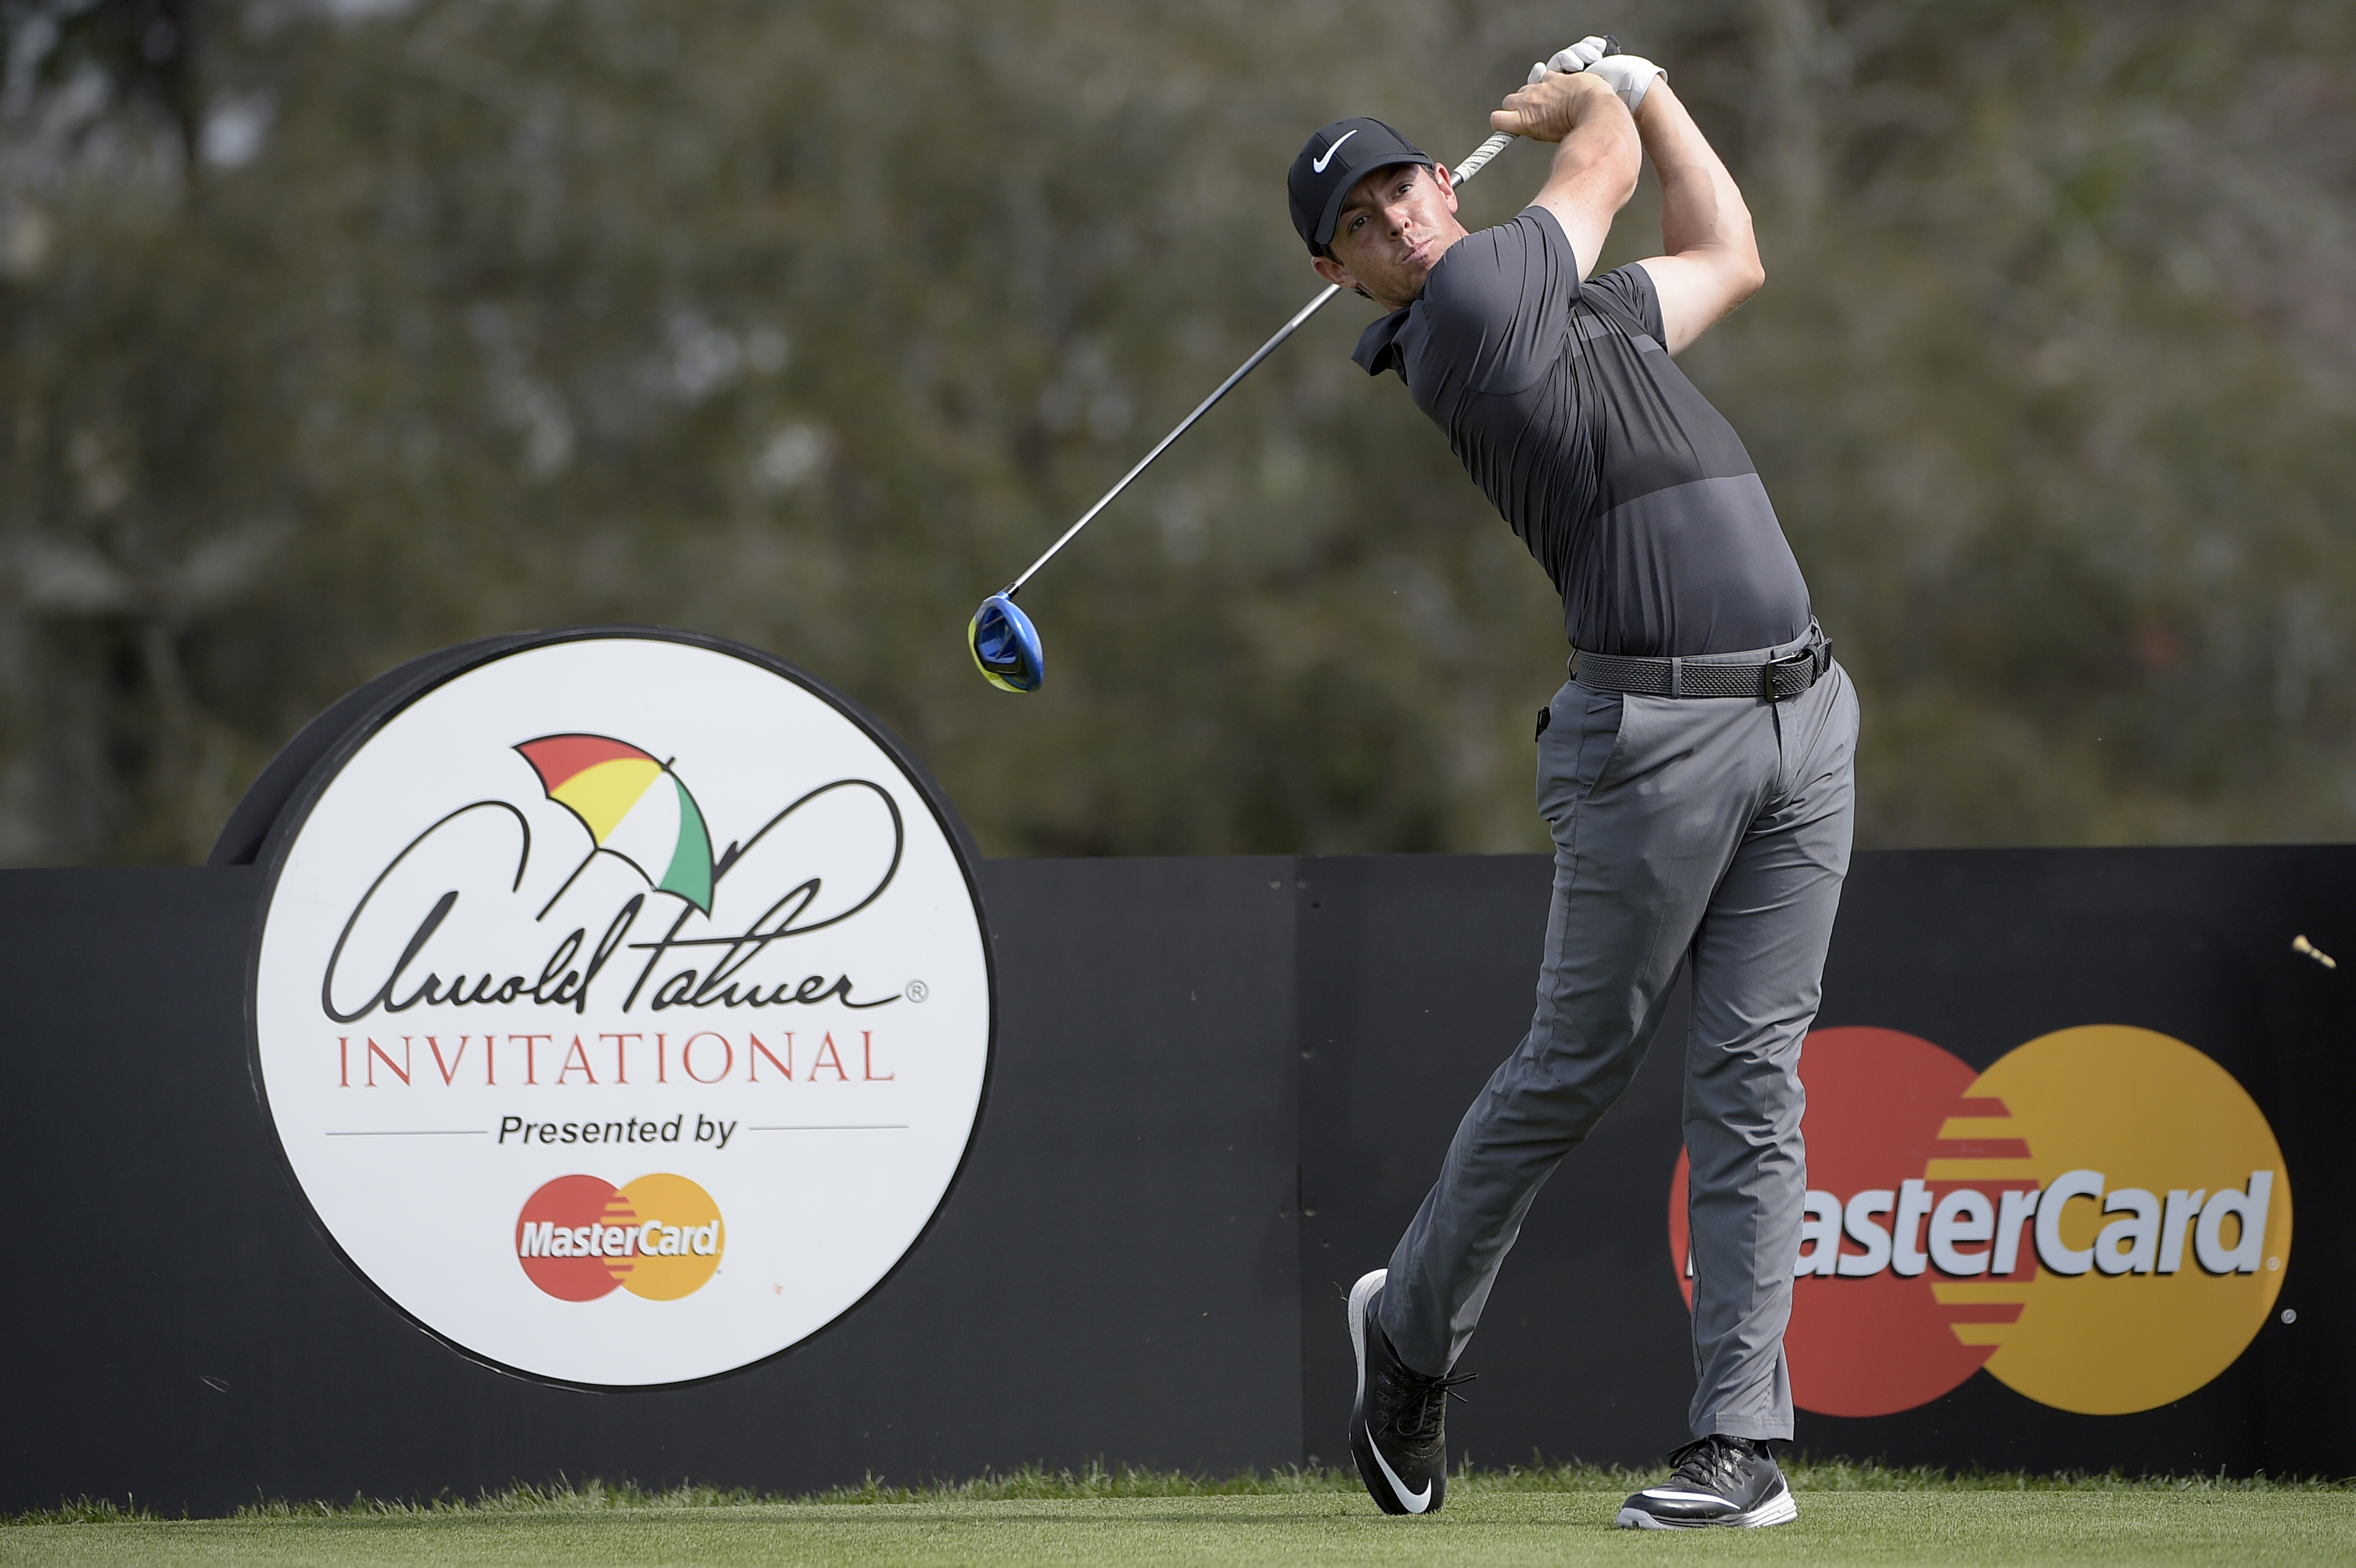 Rory McIlroy, of Northern Ireland, watches his tee shot on the 16th hole during the pro-am of the Arnold Palmer Invitational golf tournament in Orlando, Fla., Wednesday, March 16, 2016. (AP Photo/Phelan M. Ebenhack)